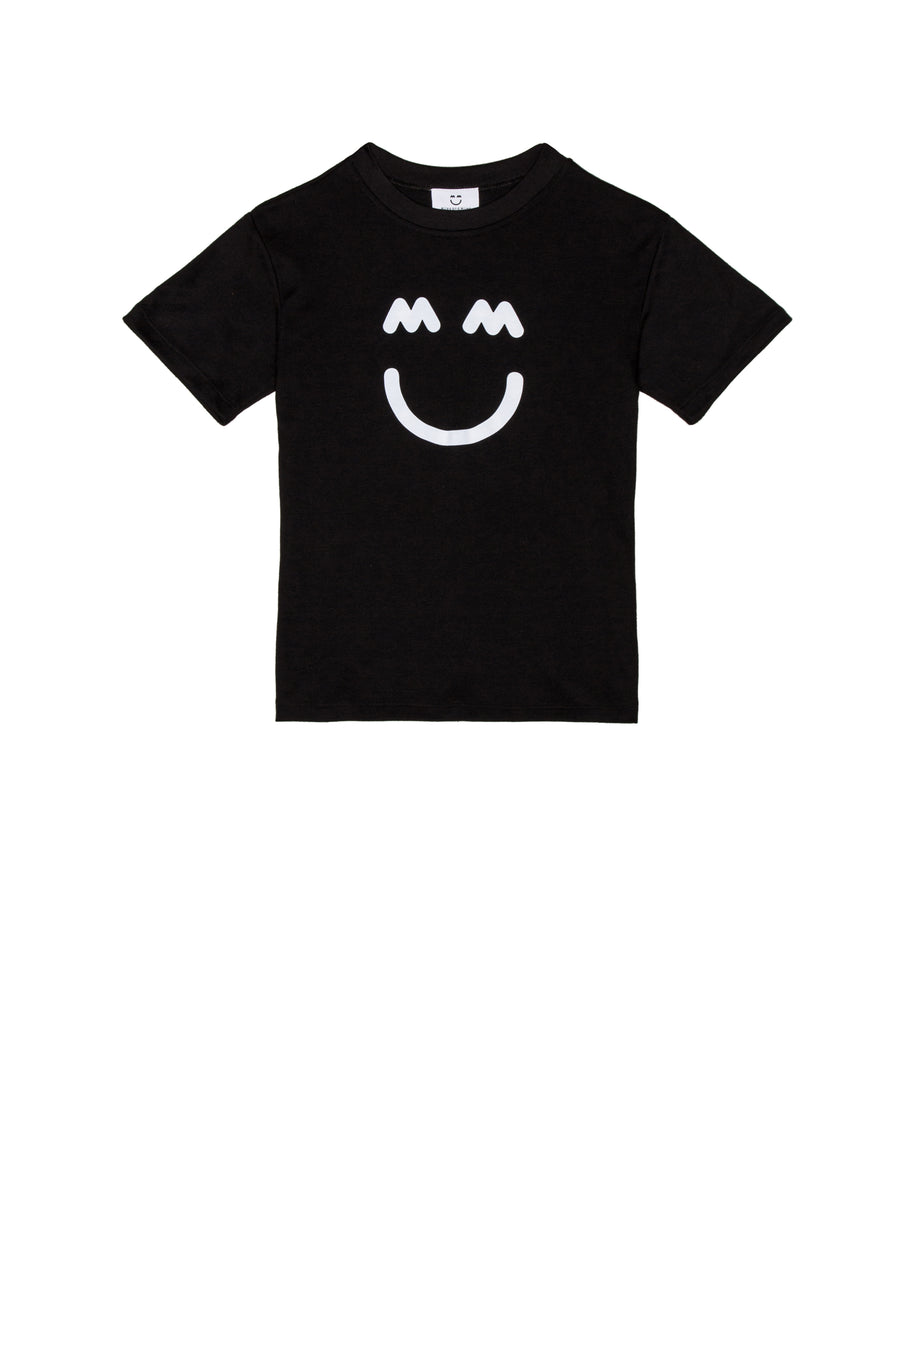 THE HAPPY TEE - SHORT SLEEVE